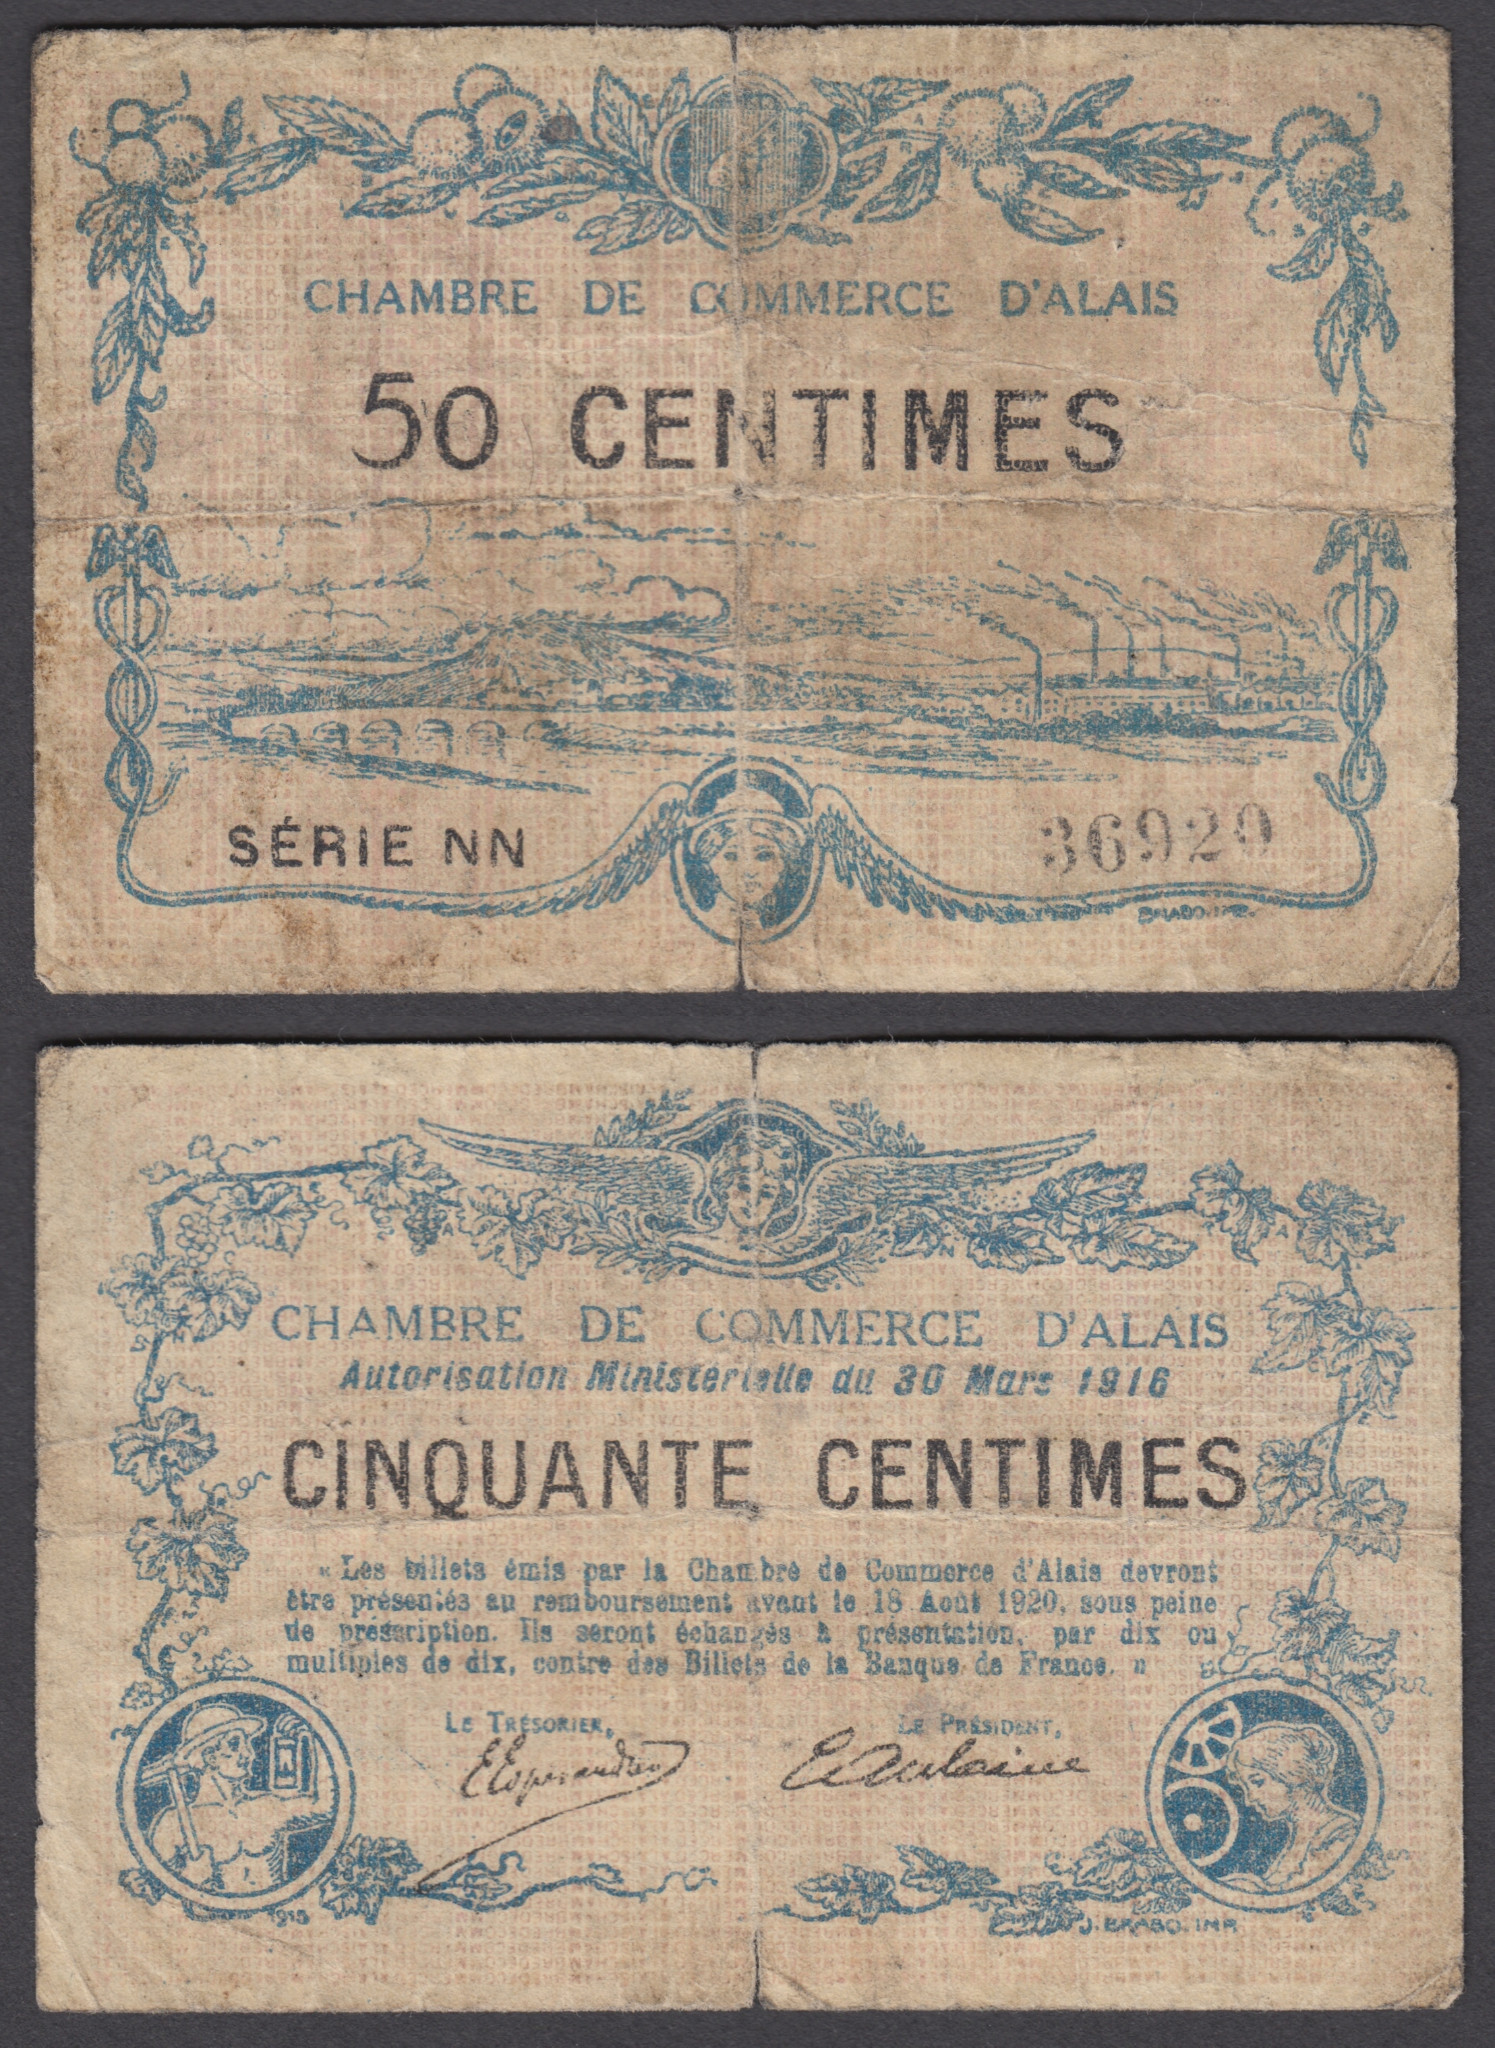 Chambre De Commerce Zimbabwe Details About France 50 Centimes 1916 Vg Condition Banknote Chambre De Commerce Alais